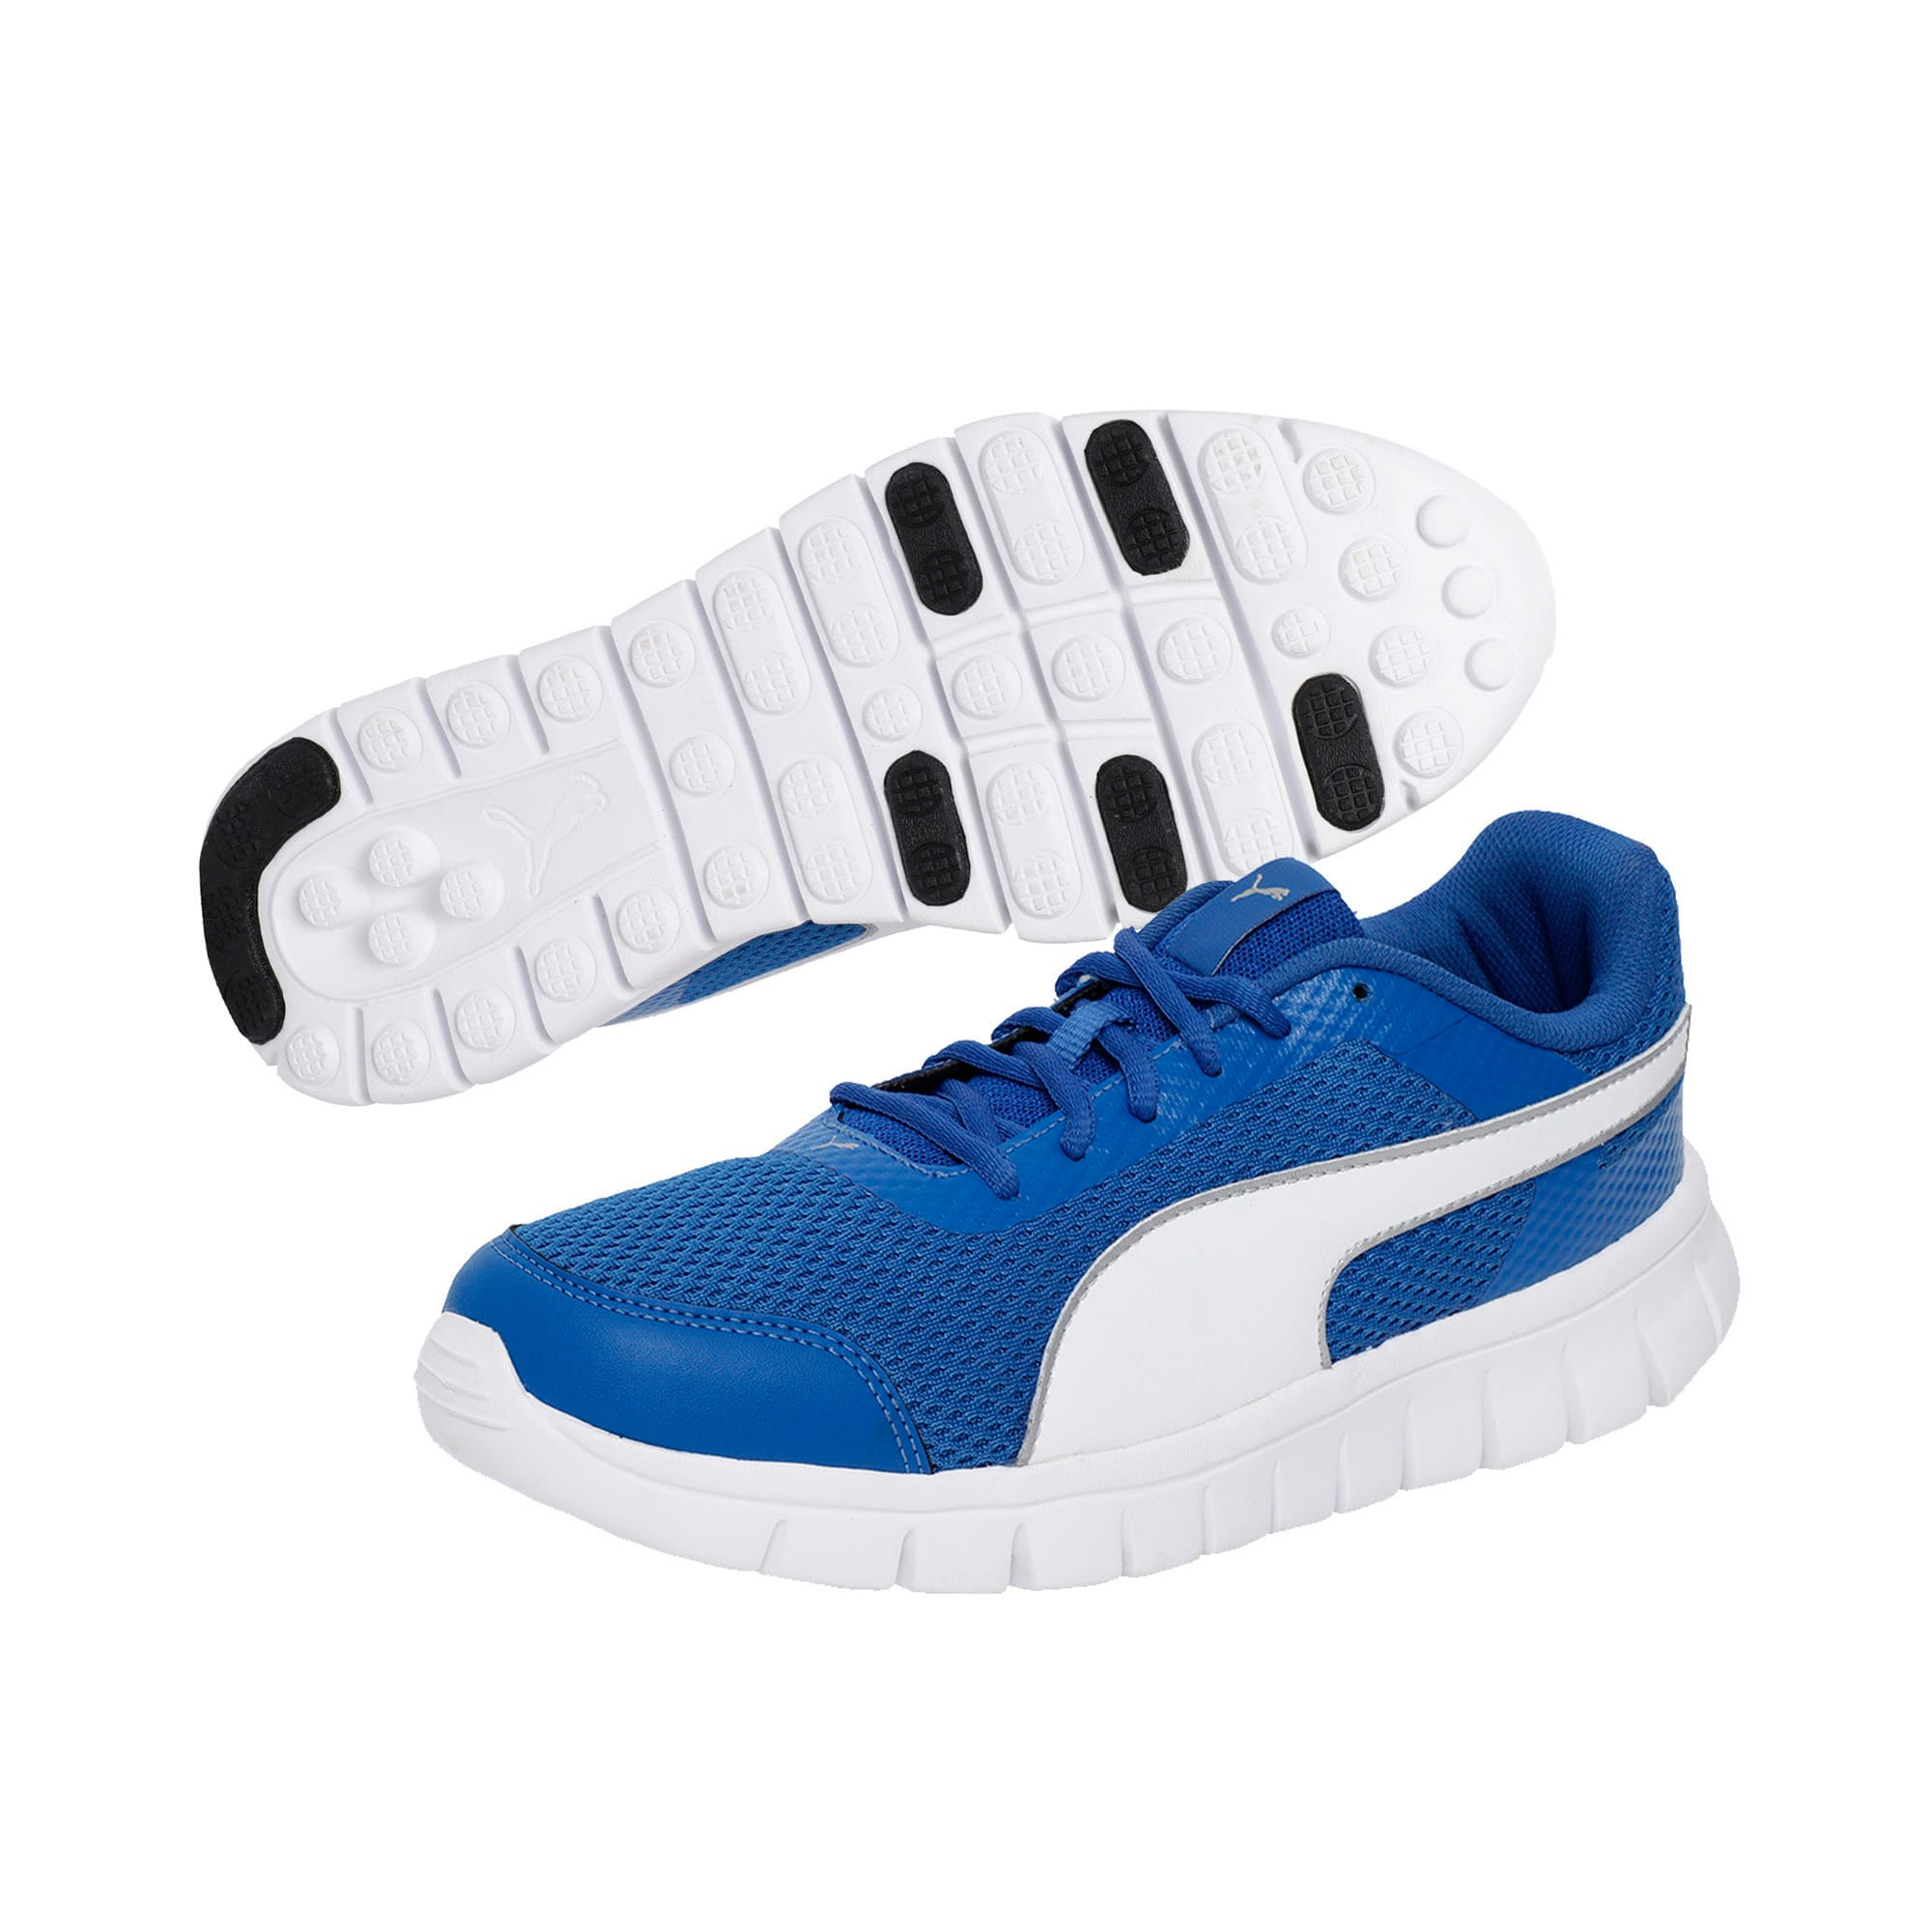 Thumbnail 2 of PUMA Blur V2 IDP Puma Black-Puma Silver, Lapis Blue-Puma White, medium-IND